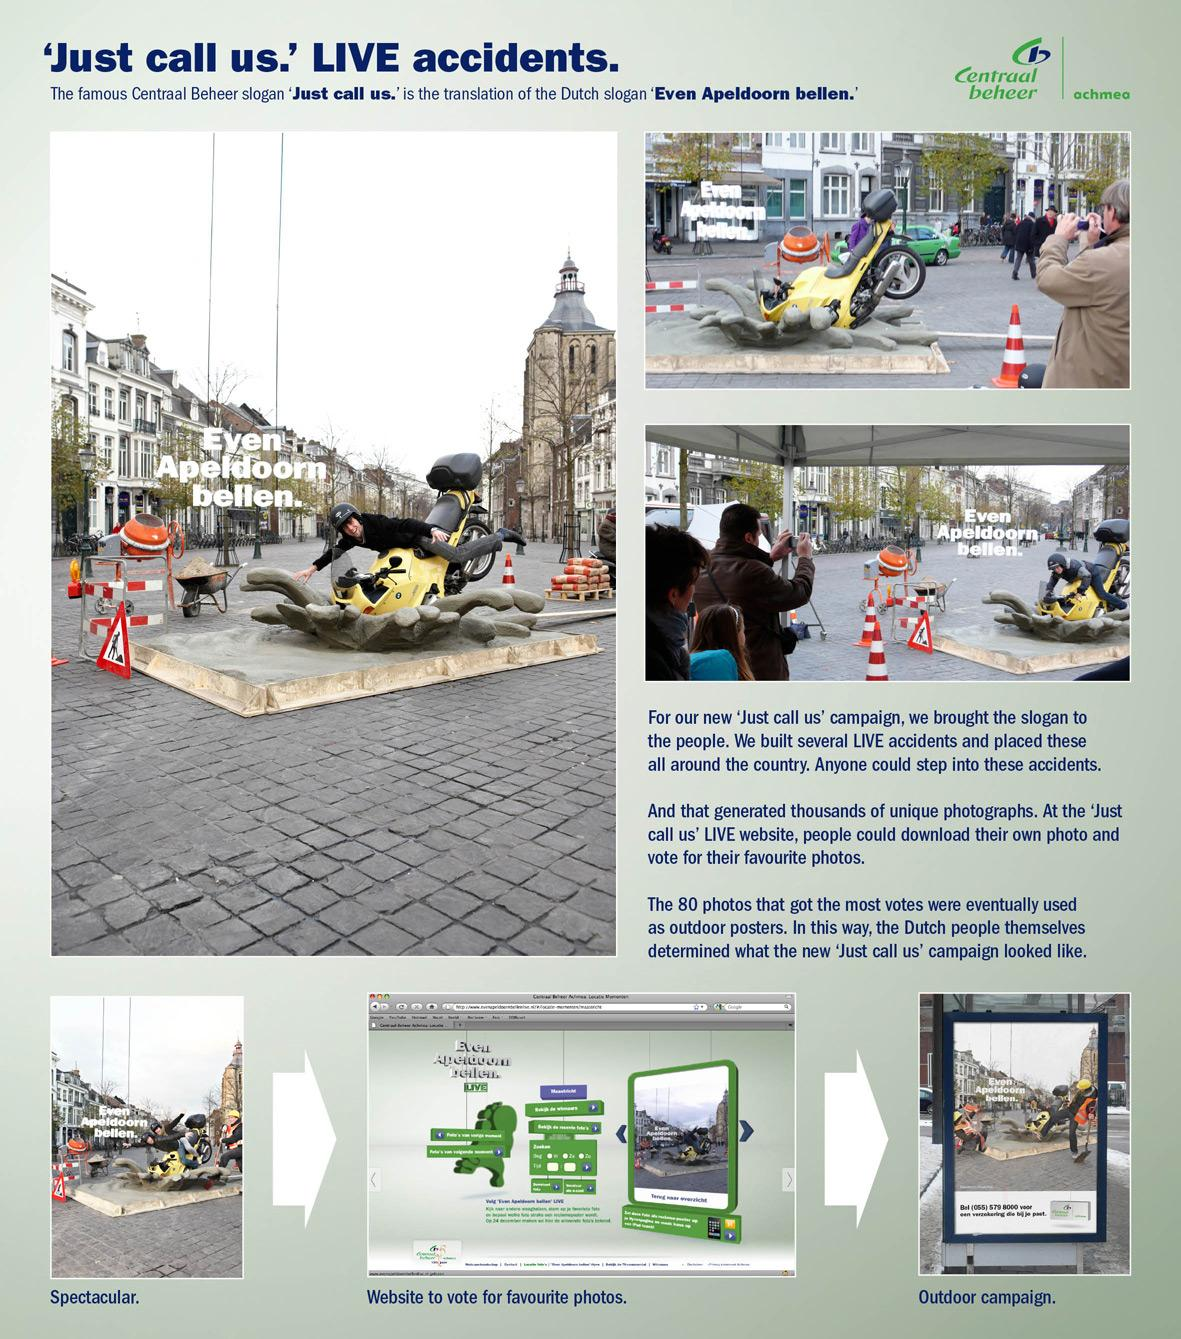 Centraal Beheer Ambient Ad -  Just call us live accidents, 3